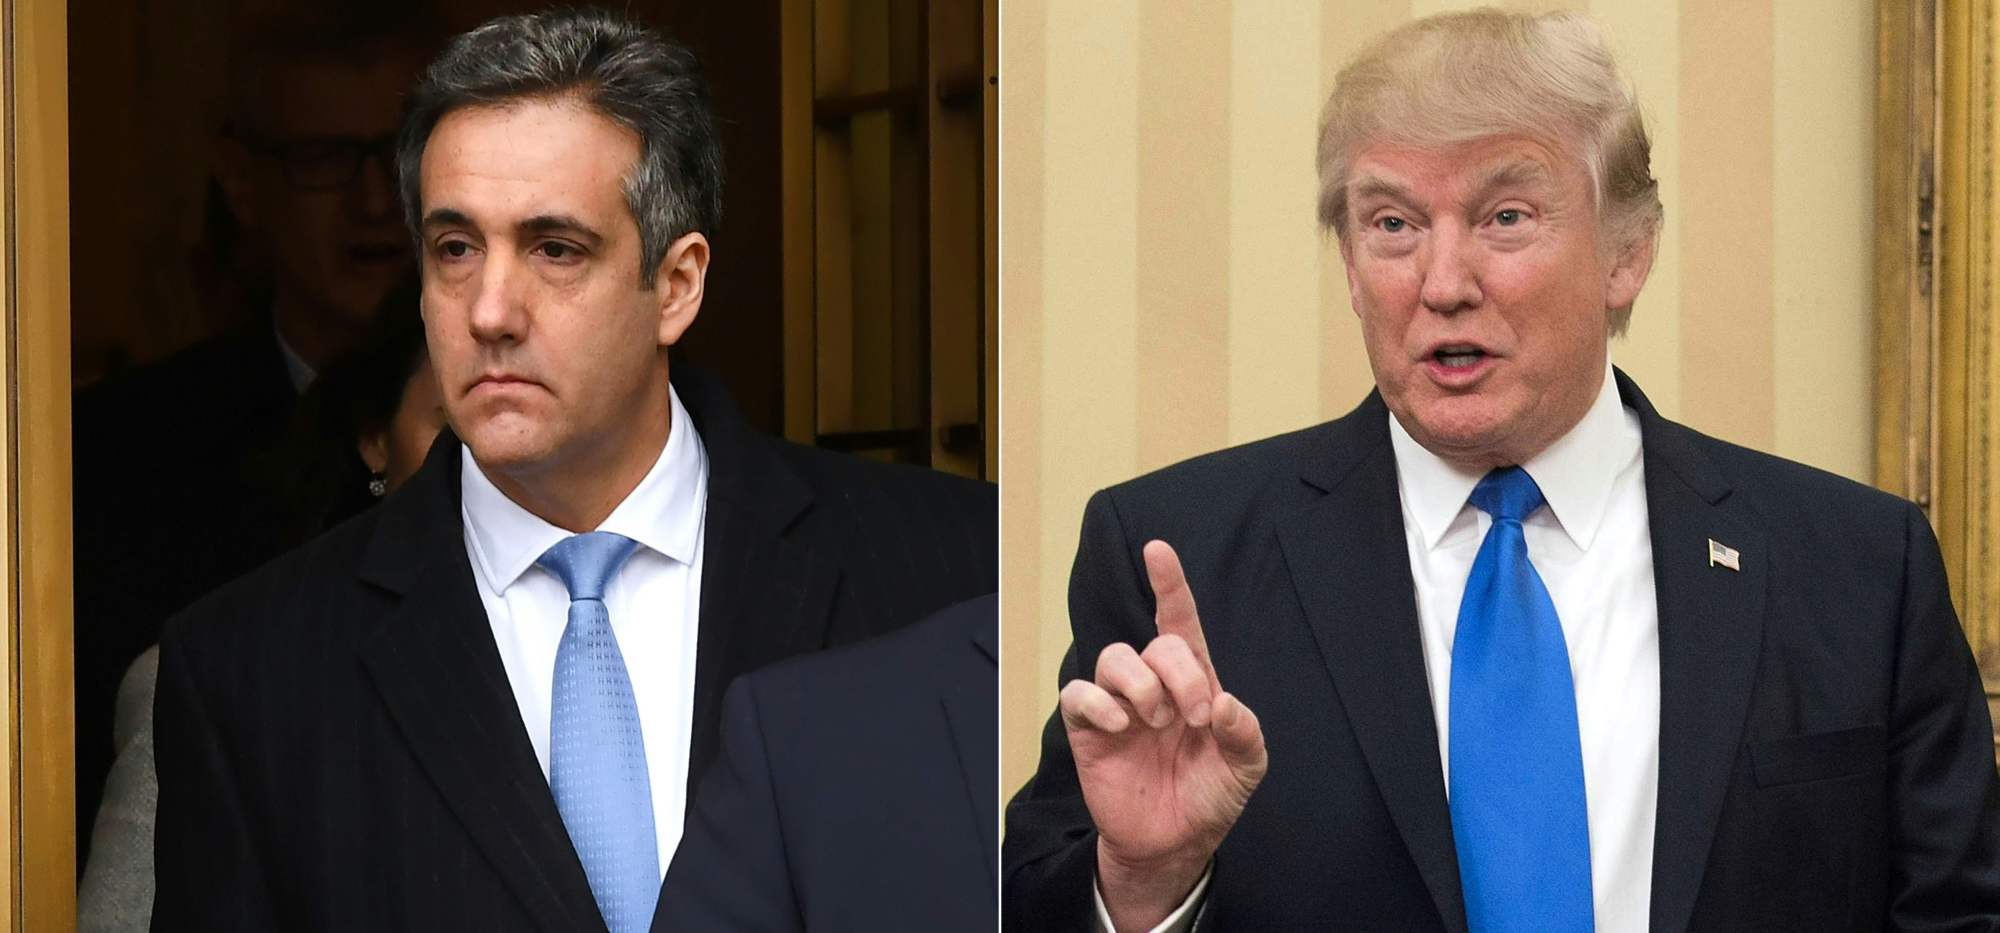 This combination of photos created Thursday shows U.S. President Donald Trump's former attorney, Michael Cohen (left), leaving U.S. Federal Court in New York on Wednesday, and Trump speaking in the Oval Office at the White House in Washington last year. Trump tried to shield himself from rising legal heat Thursday with tweets insisting he never ordered Cohen to break the law. | AFP-JIJI